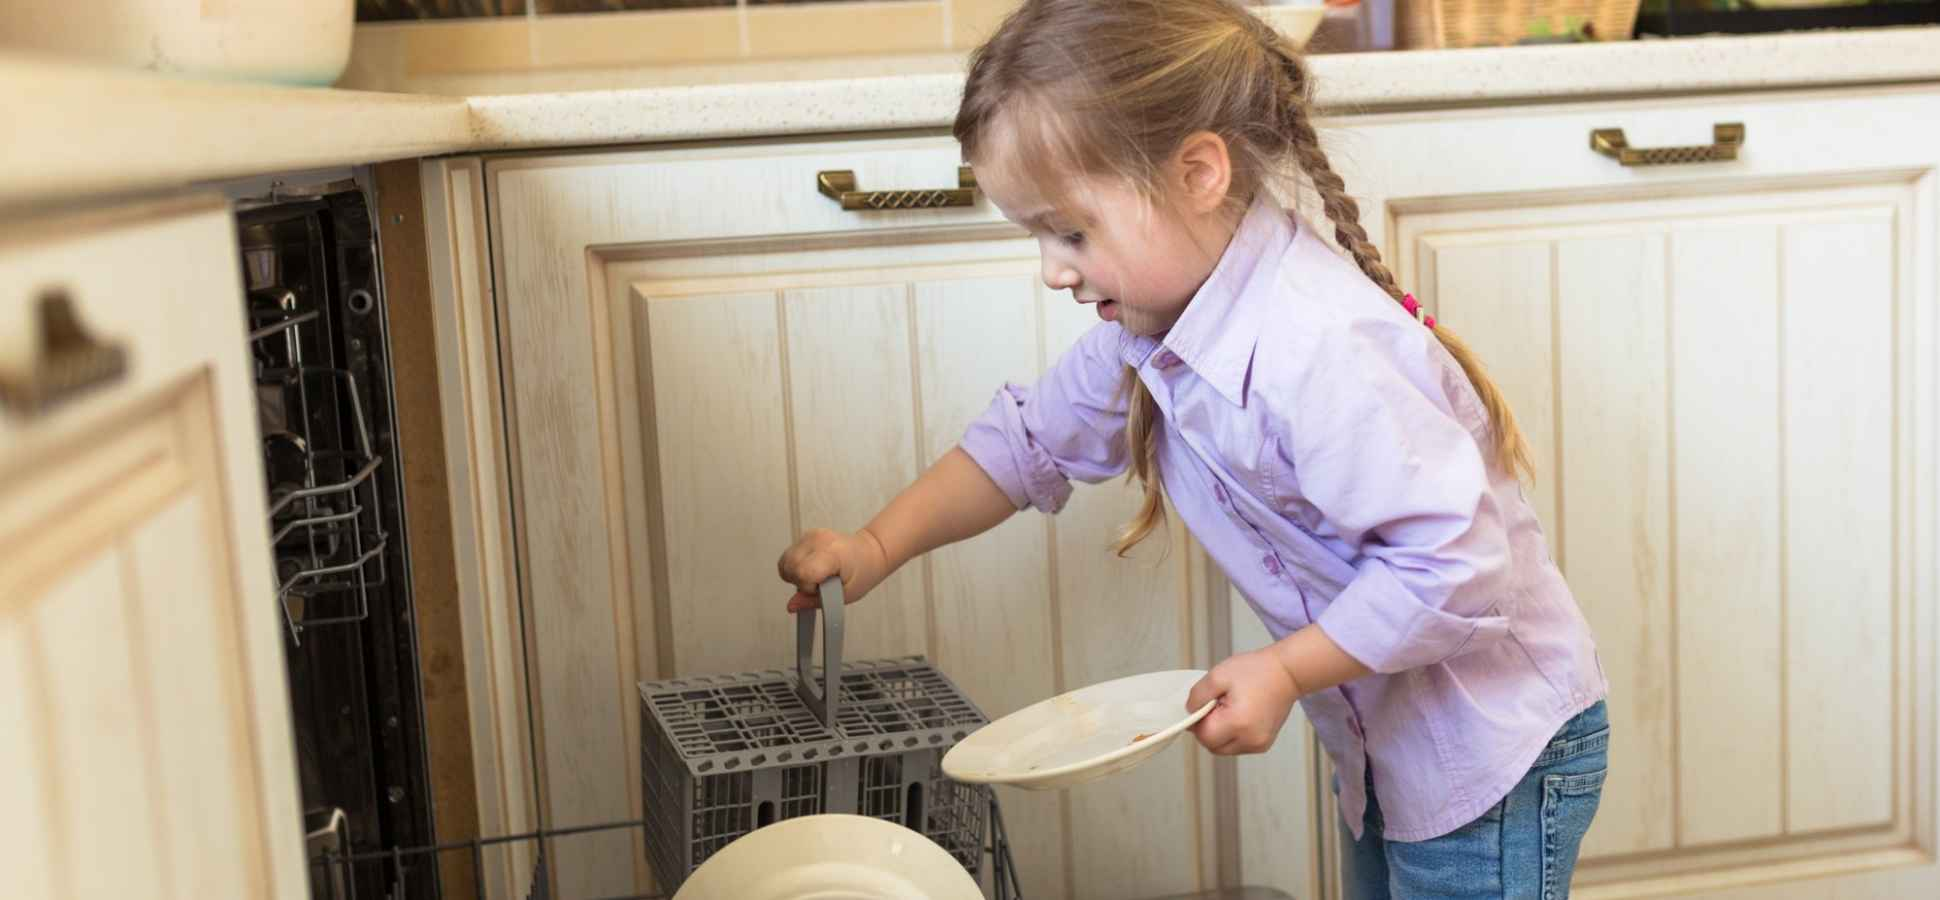 Kids Who Do Chores Are More Successful Adults | Inc.com